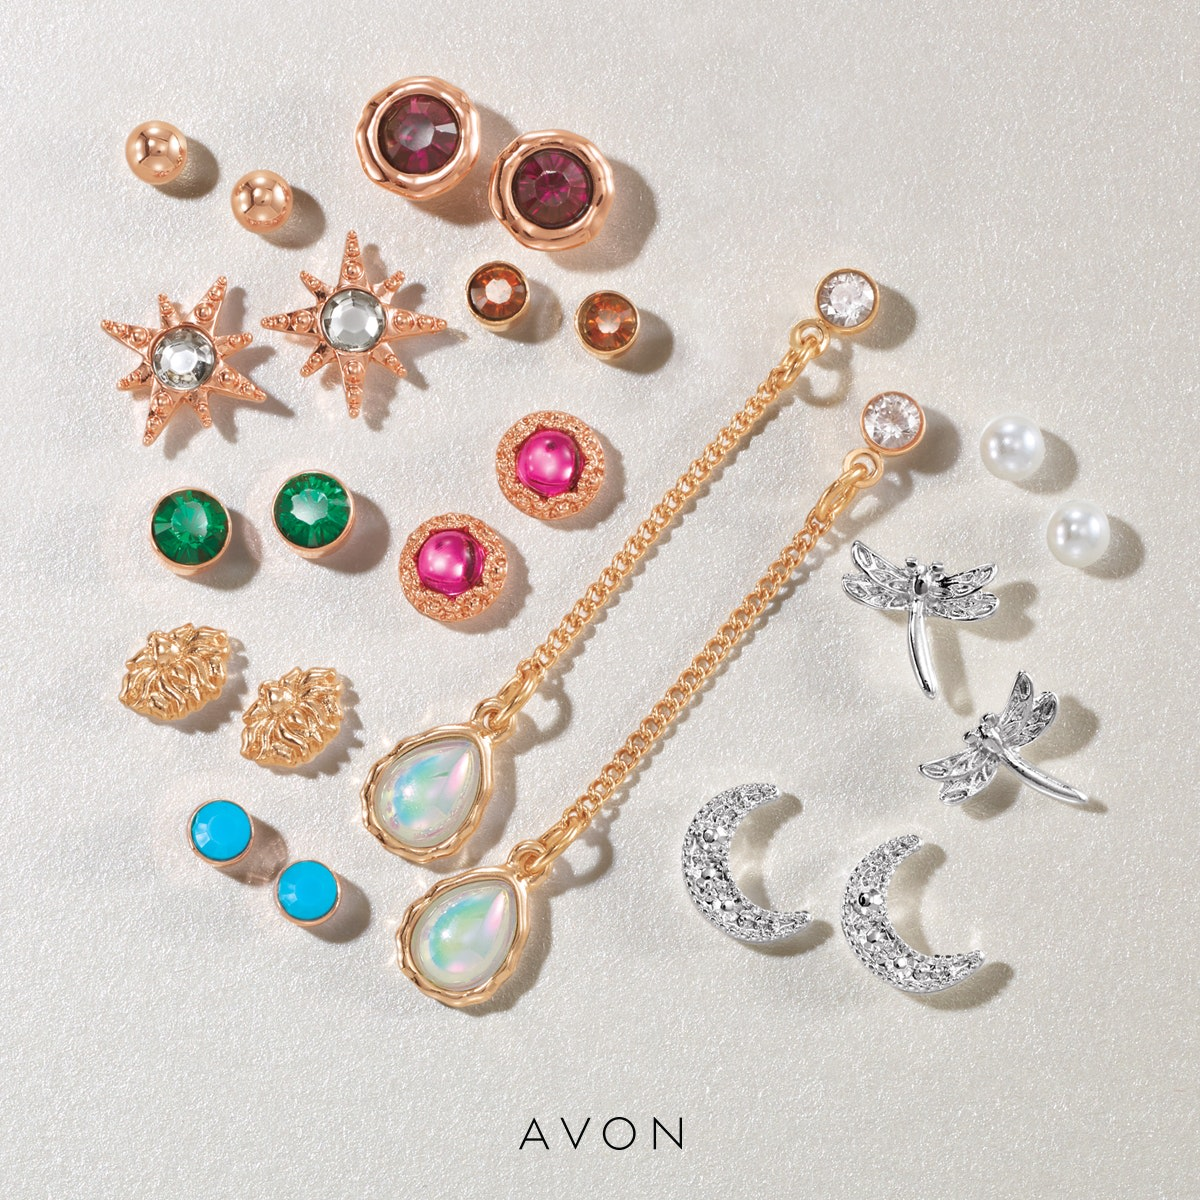 Statement jewelry for days. 12 pairs of mixed metals and designs. https://www.avon.com/product/good-vibes-earring-pack-72971?rep=georgiana… • • #outfitinspo #avonrep pic.twitter.com/zWEqd8gOeG